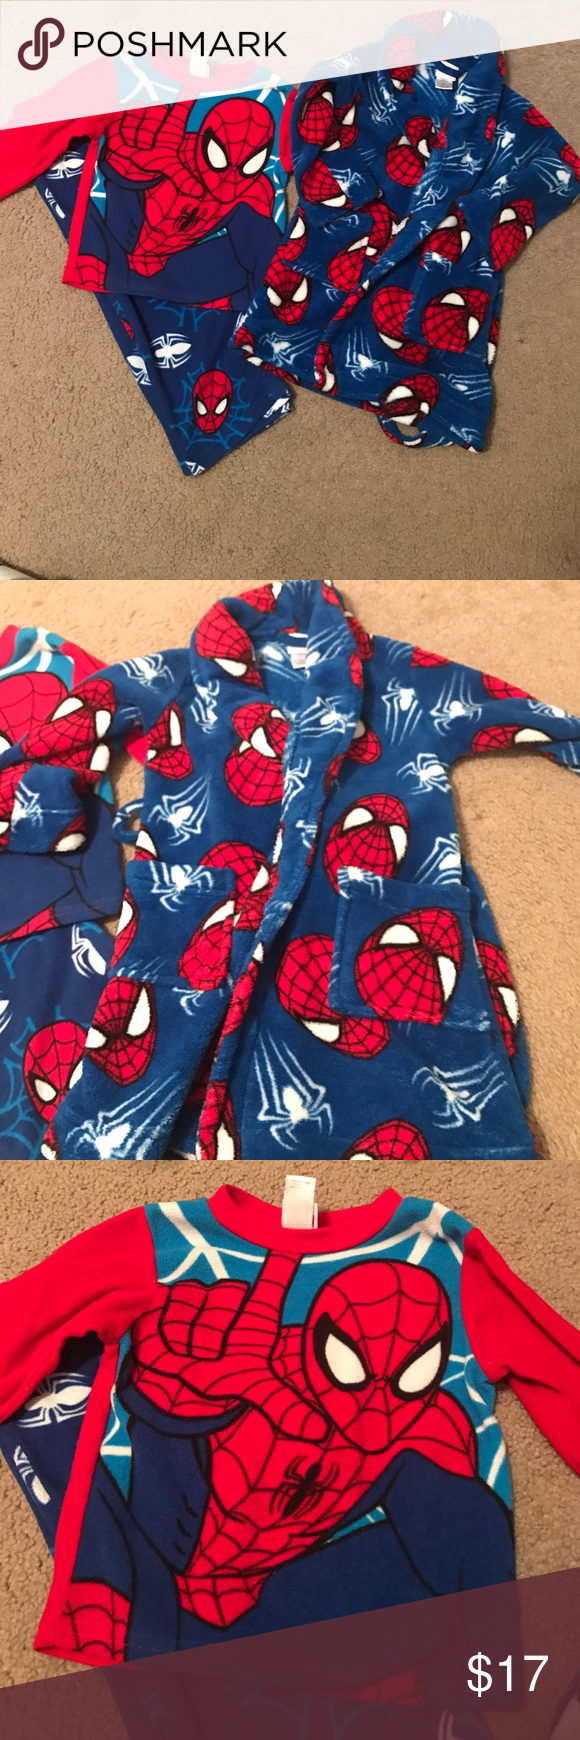 fe22717c10 3 Piece Spider-Man Pajama set All three pieces fleece  pajama top and  bottoms